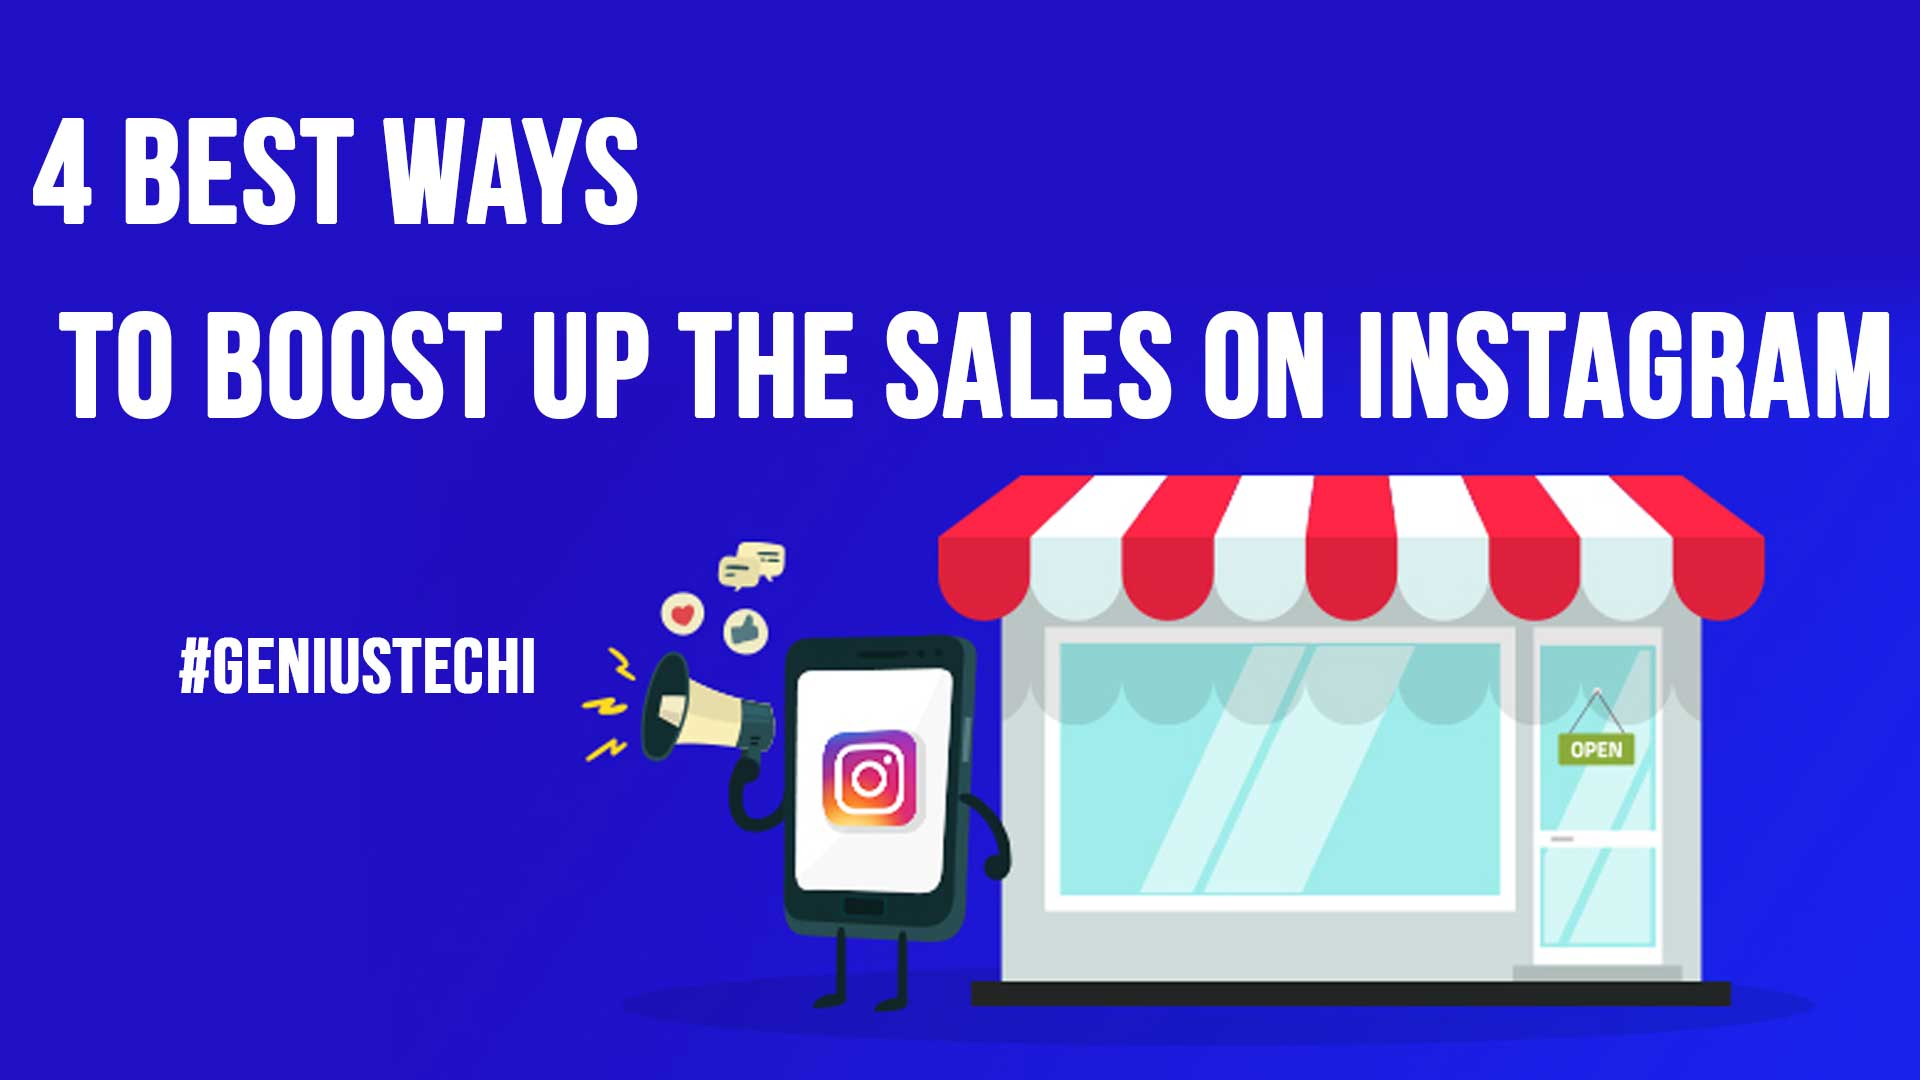 4 Best Ways to Boost Up the Sales on Instagram